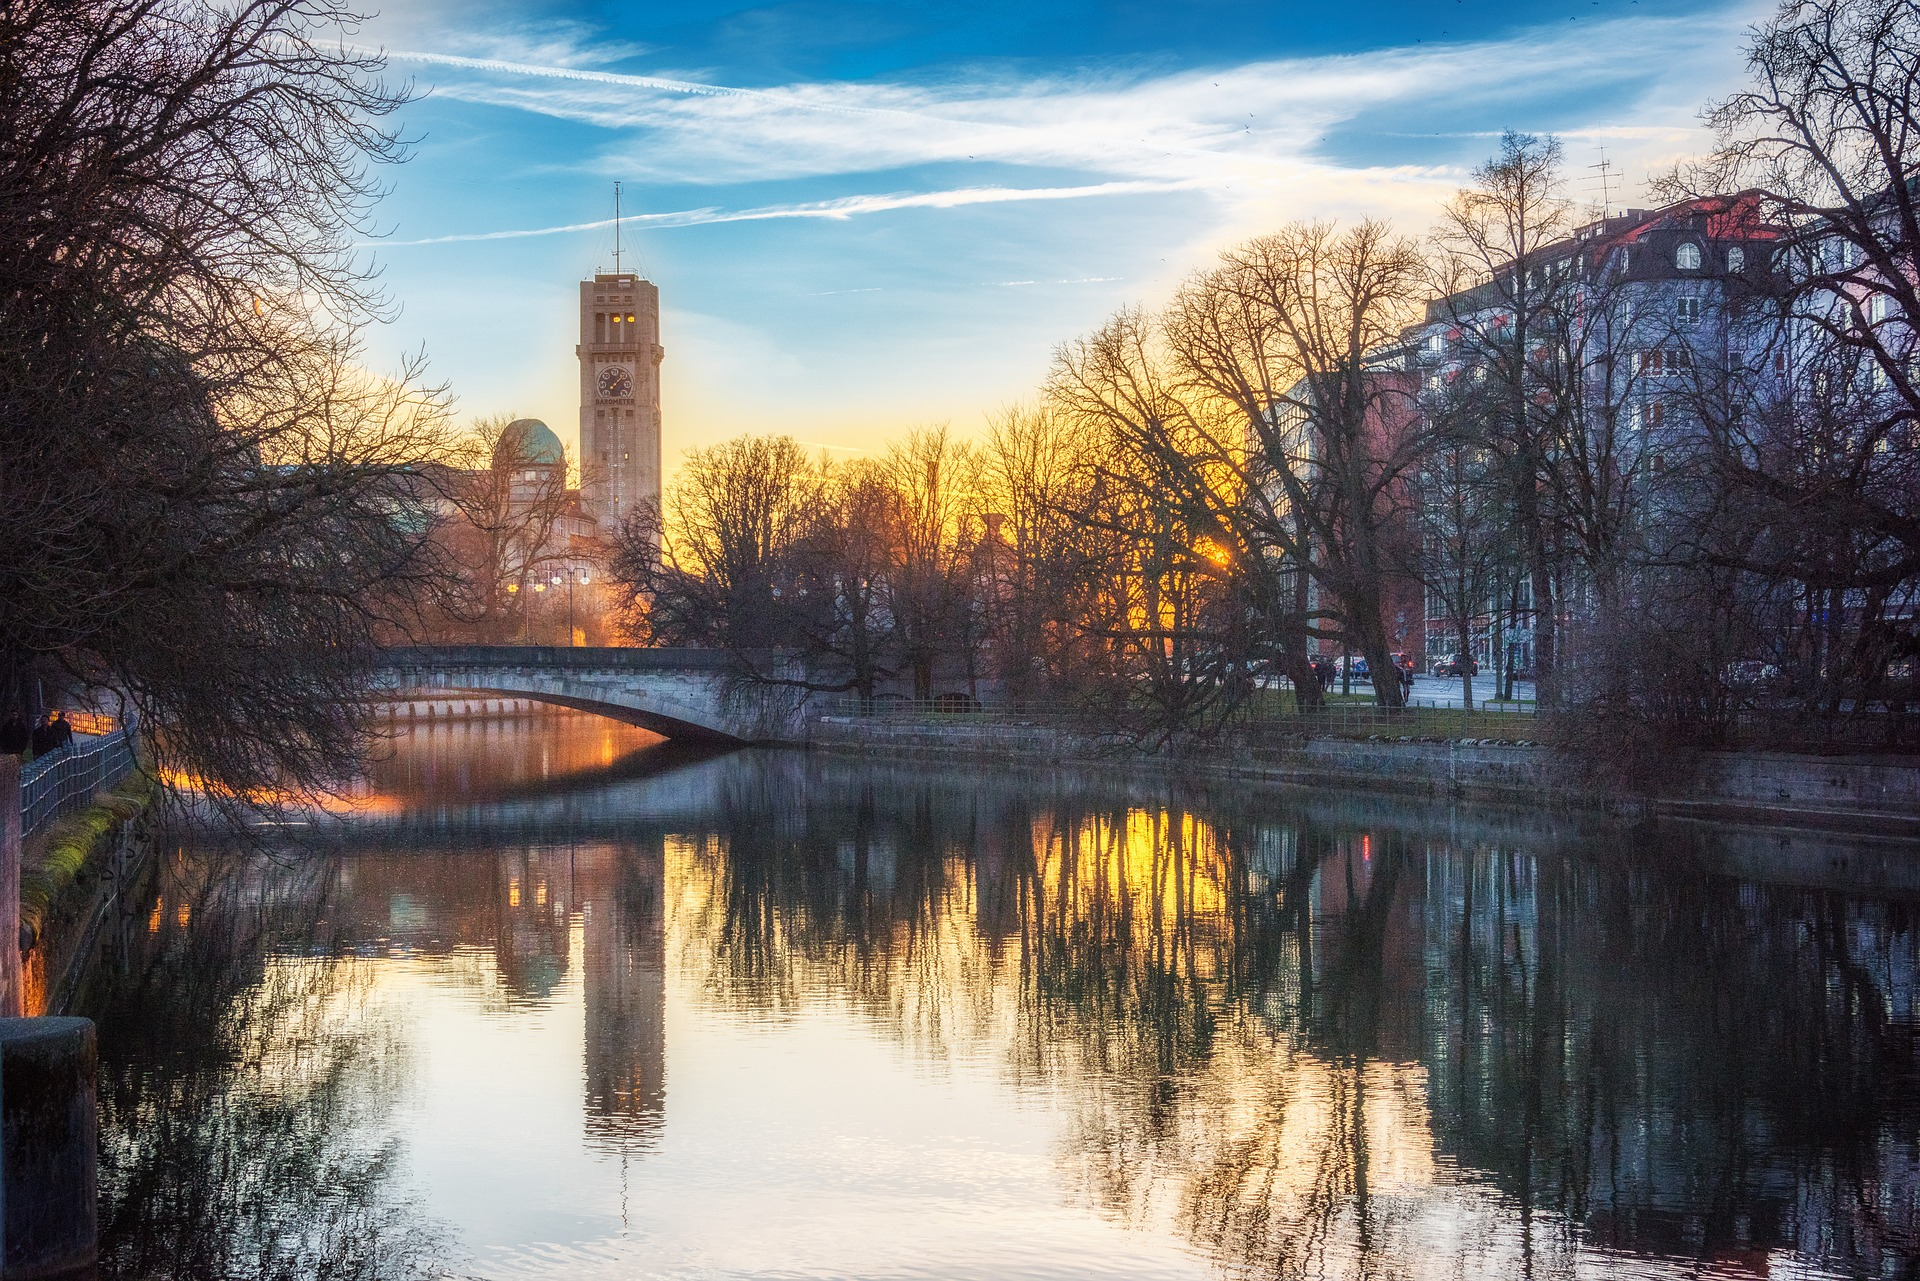 Sunset in Munich, Germany